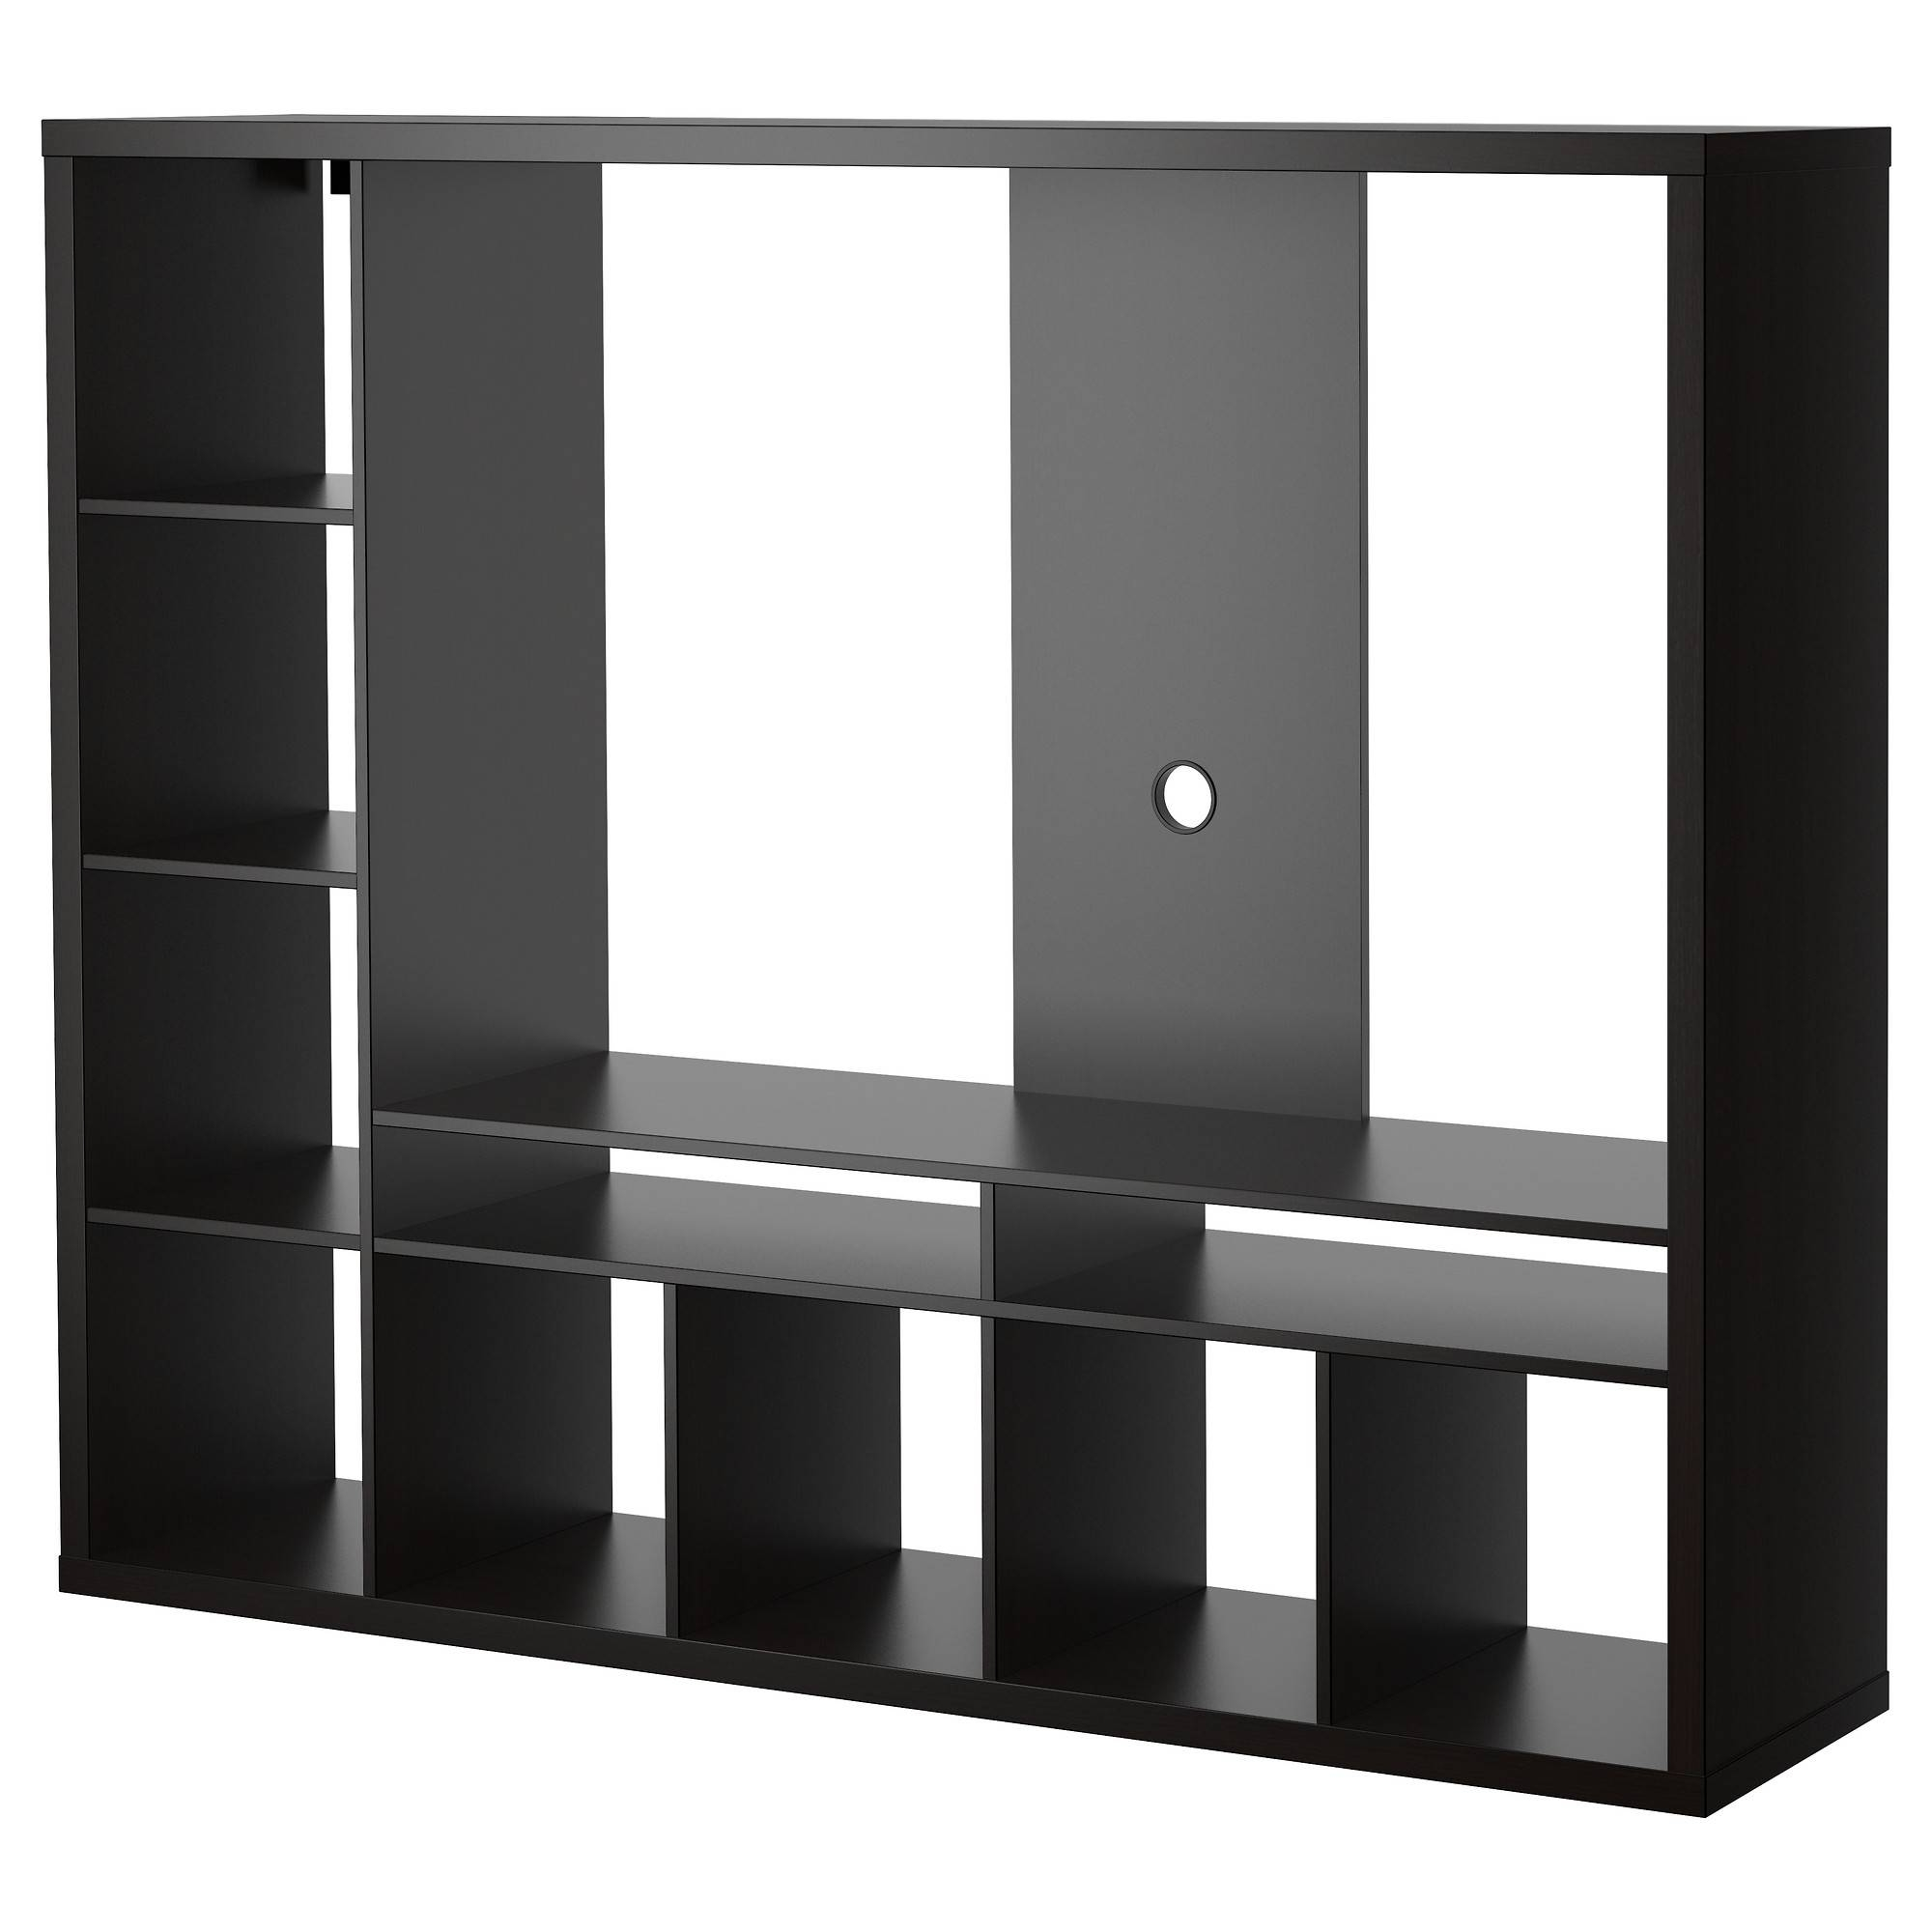 Lappland Tv Storage Unit - Black-Brown - Ikea throughout Tv Stands With Baskets (Image 6 of 15)